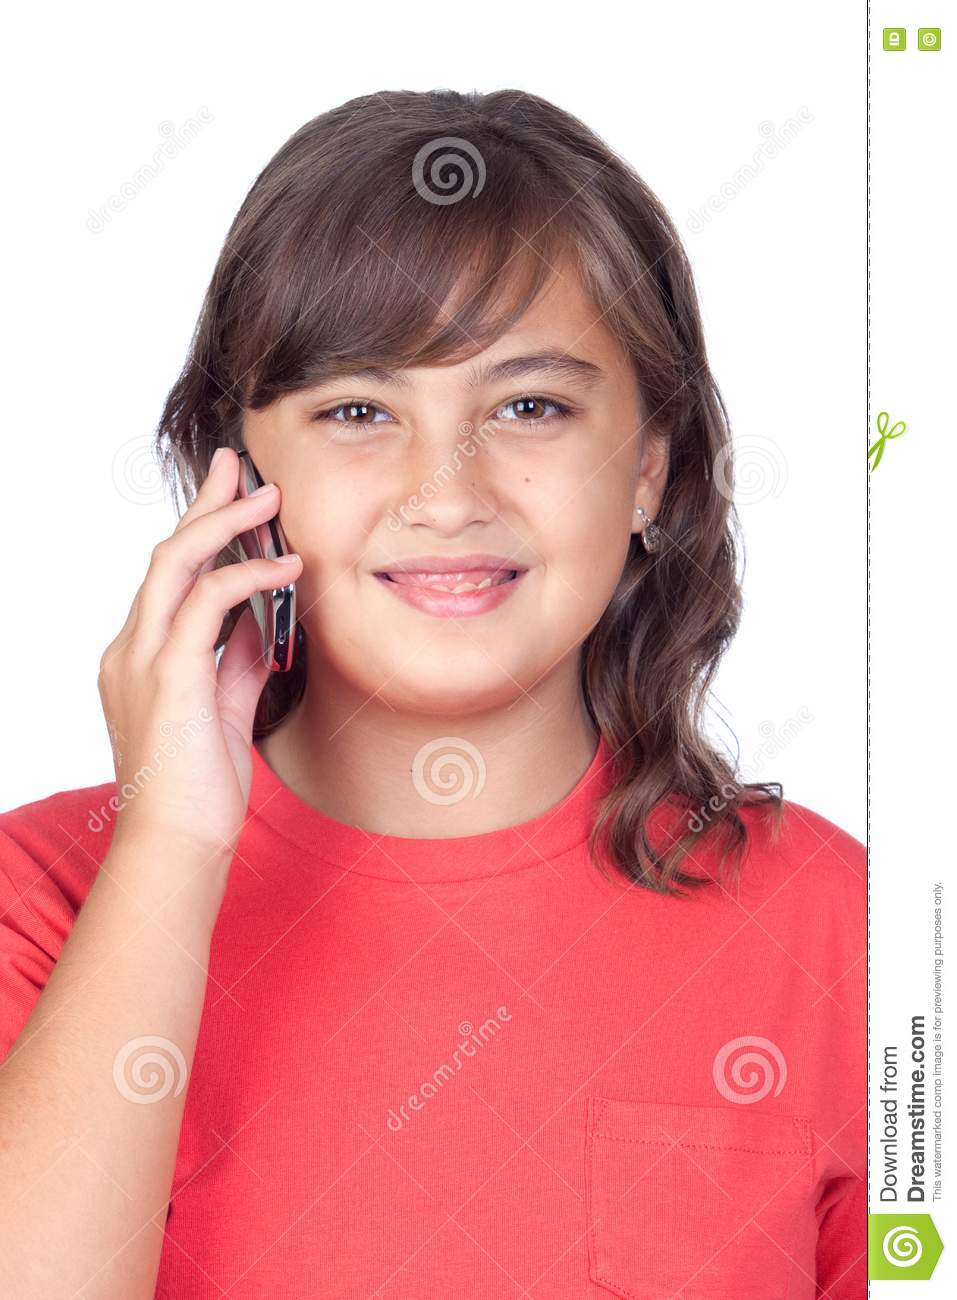 Adorable preteen girl with a mobile isolated on white background.